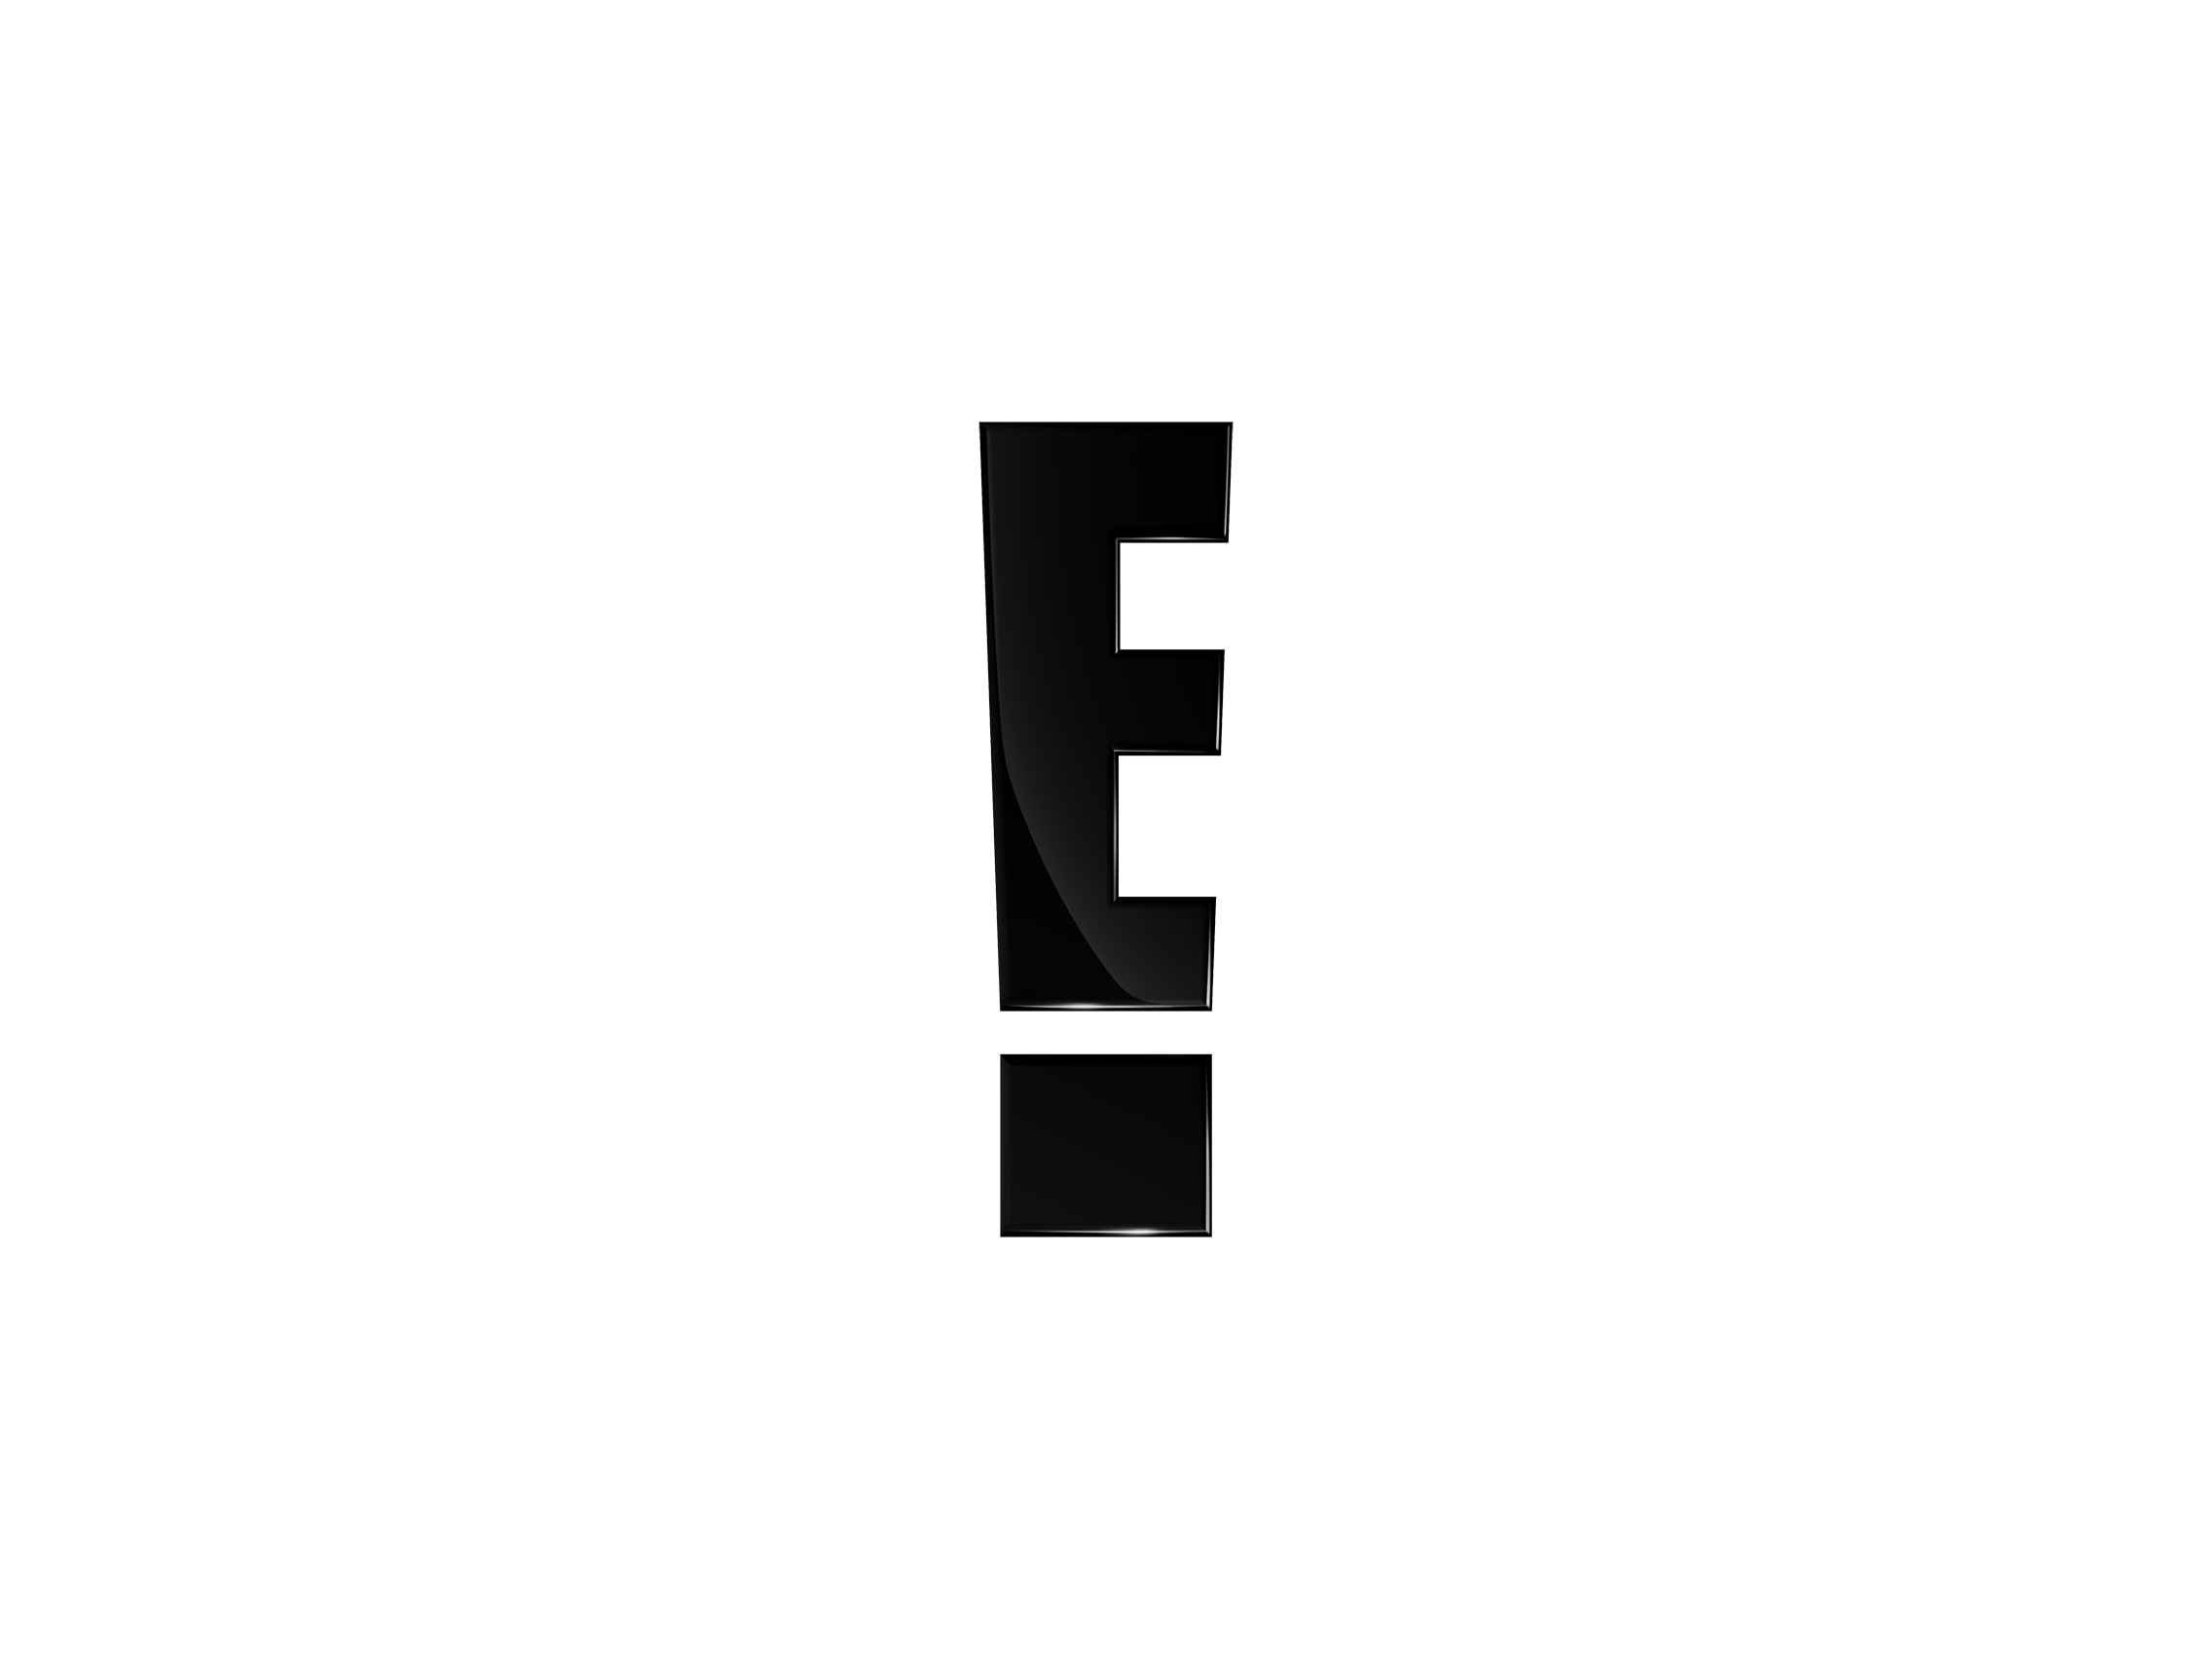 E! (E! Entertainment Television) is an American television